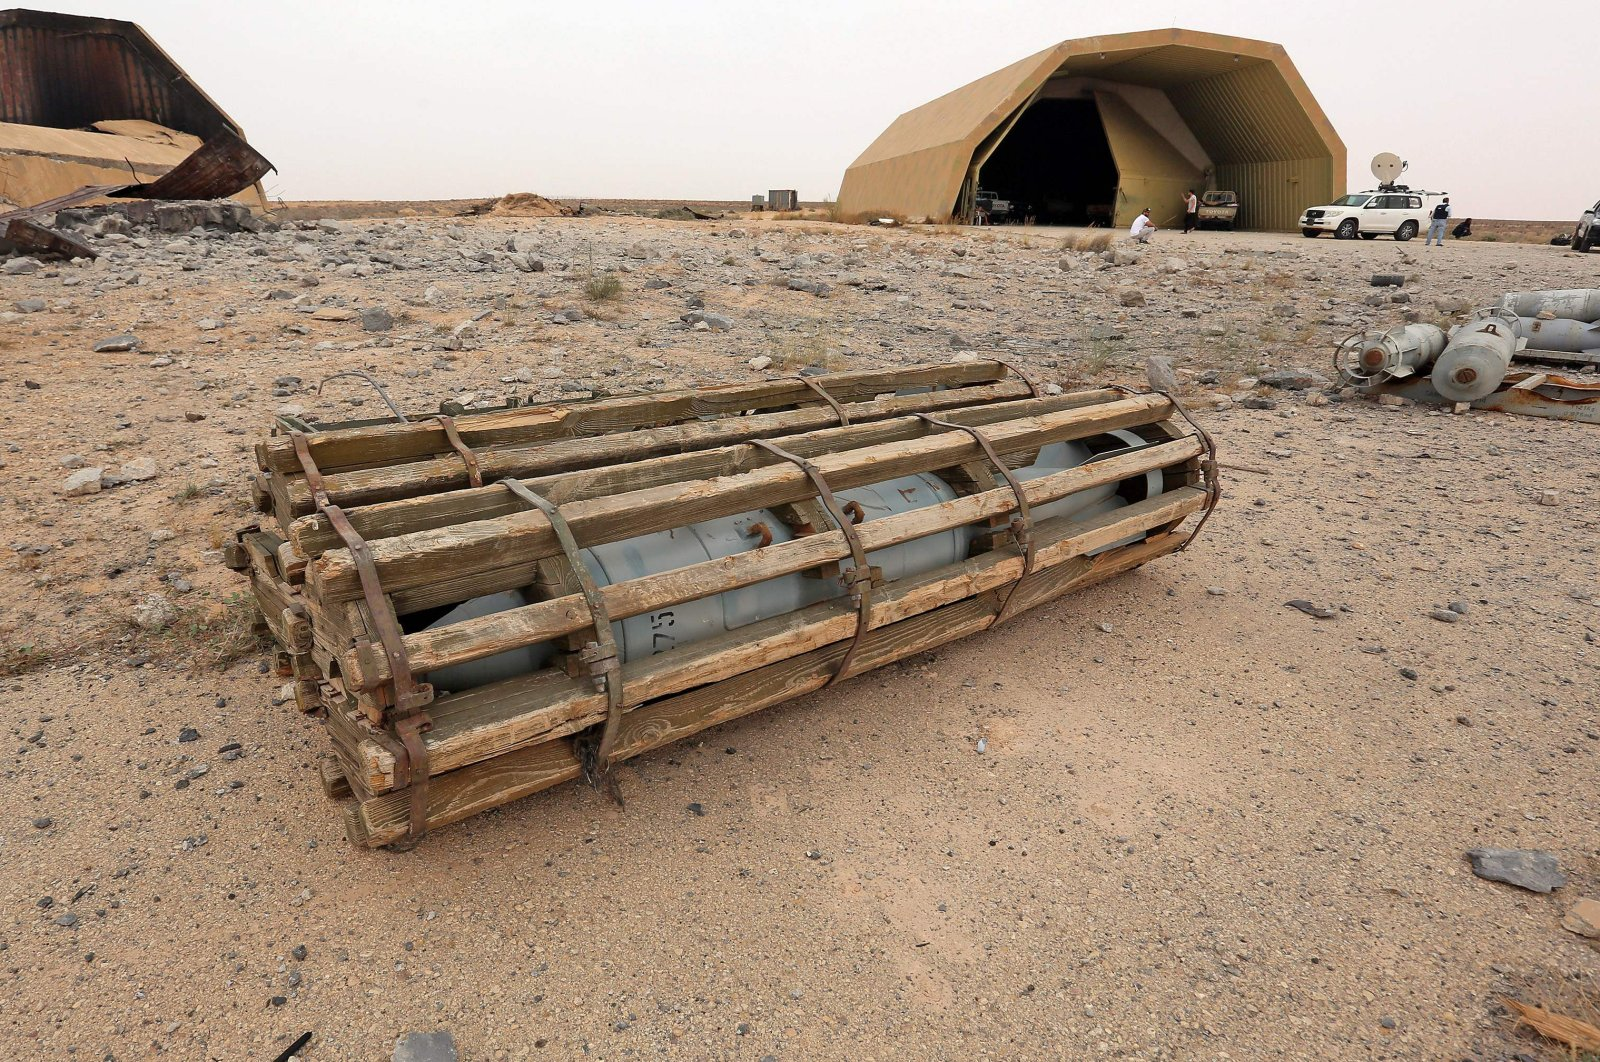 A view of a discarded aircraft-mounted explosive outside a hangar at Al-Watiya air base, southwest of the capital Tripoli, after the strategic location was seized by forces loyal to Libya's U.N.-recognized Government of National Accord (GNA), Libya, May 18, 2020. (AFP Photo)